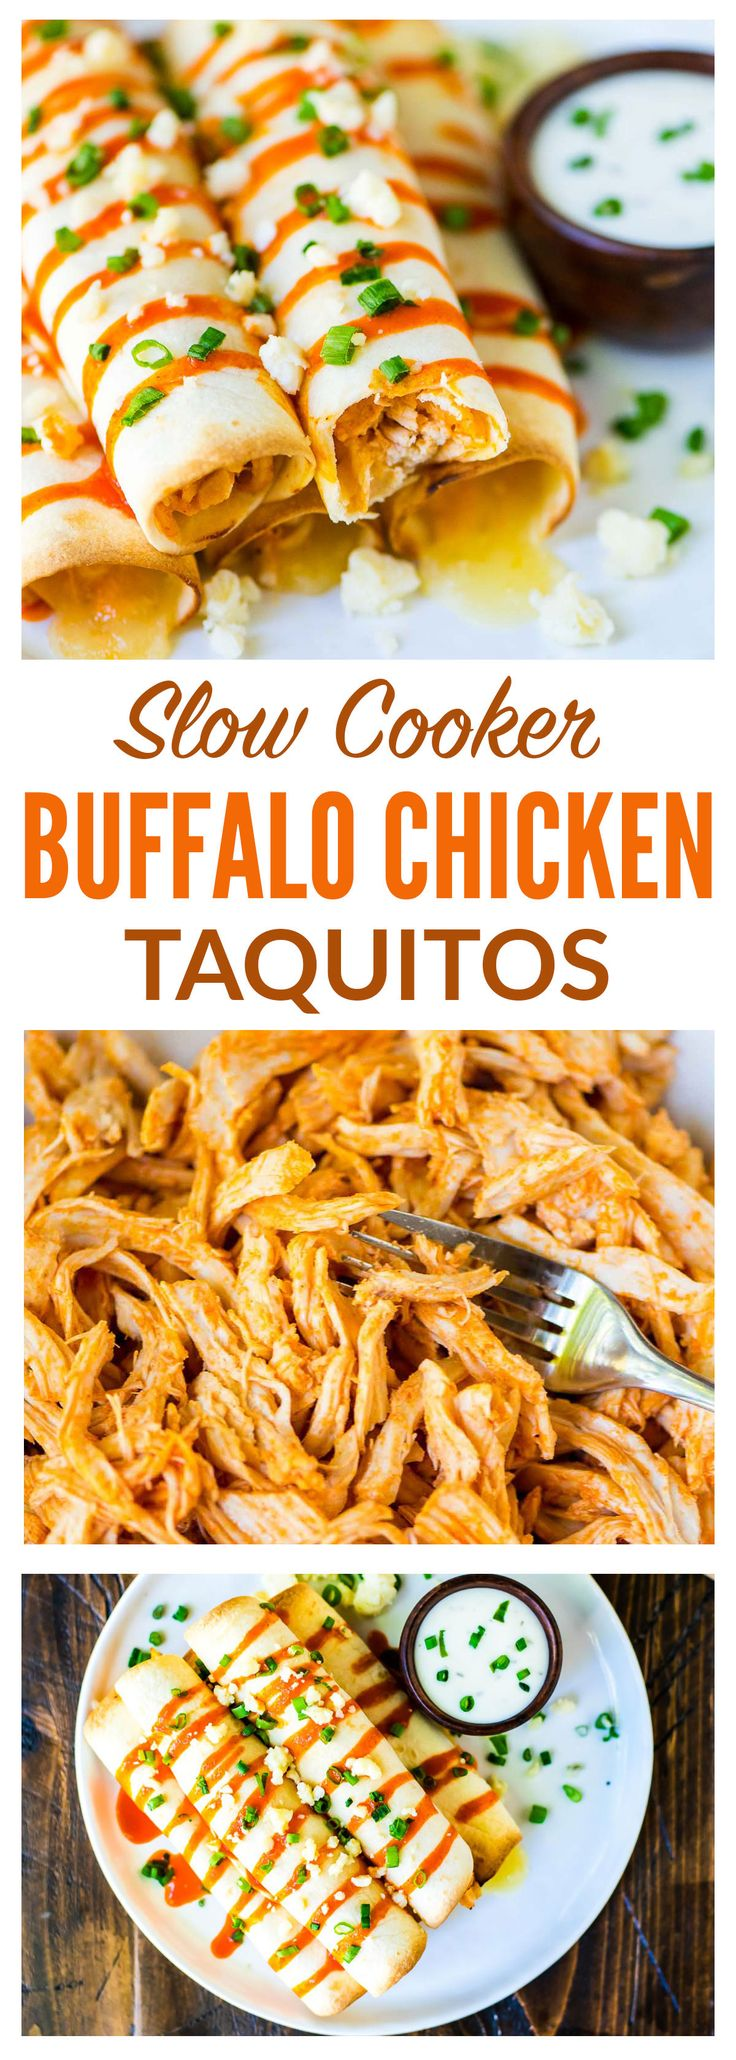 Baked Buffalo Chicken Taquitos. Slow cooker Buffalo chicken filling, baked inside a crispy tortilla. Perfect for a game day appetizer or for an easy dinner! Recipe at wellplated.com | @wellplated